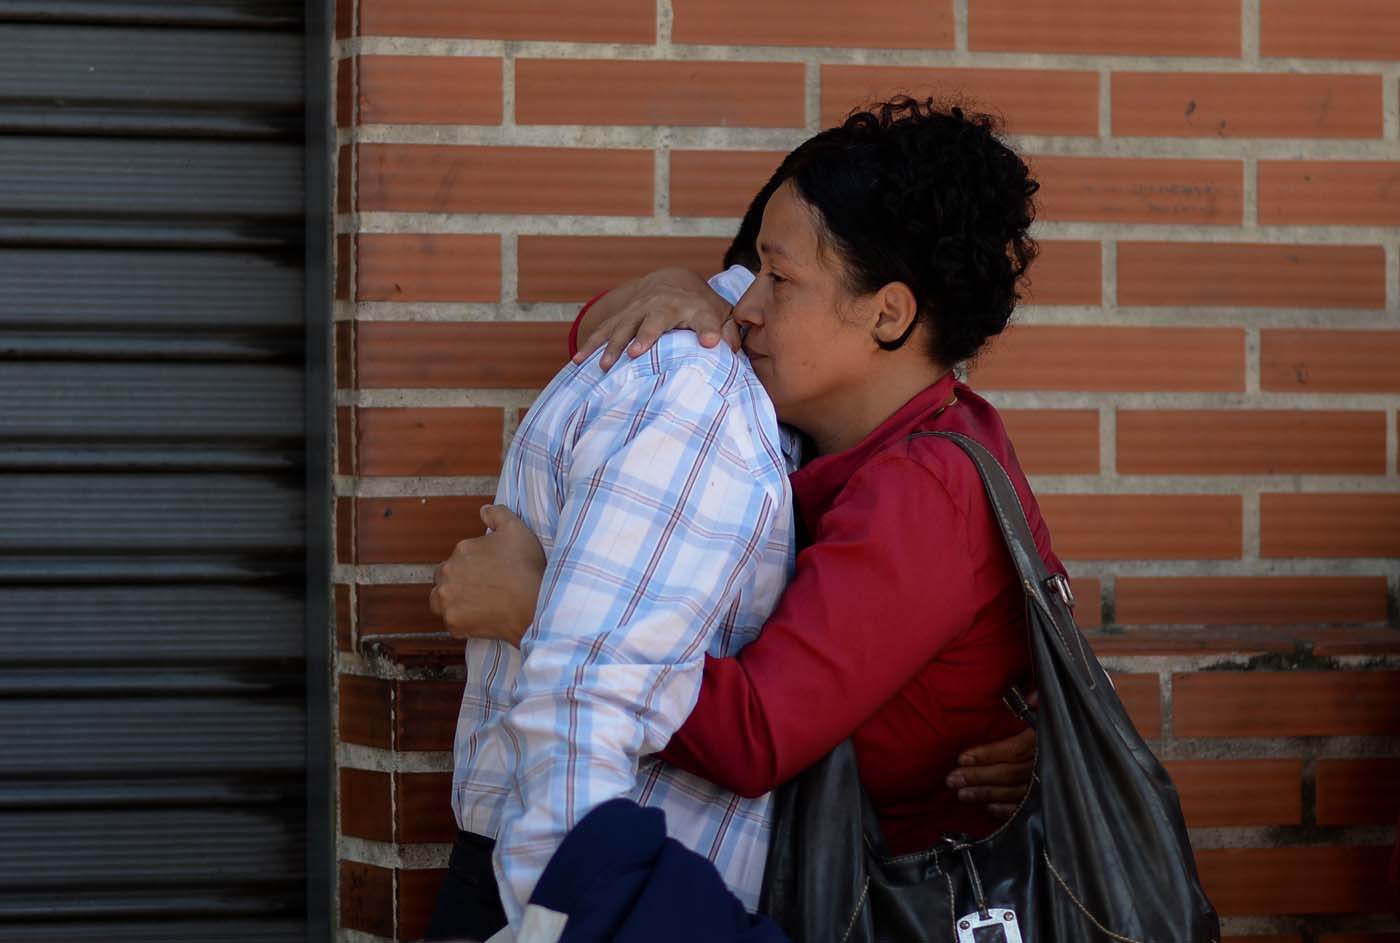 A couple embraces before boarding a bus at a station in Caracas on October 11, 2017 as scores of disappointed Venezuelans who see no end to the crisis choose to leave the country. Venezuela, which holds regional elections on October 15, is a country at the top of the Latin American continent that is in deep economic and political crisis. / AFP PHOTO / Federico PARRA